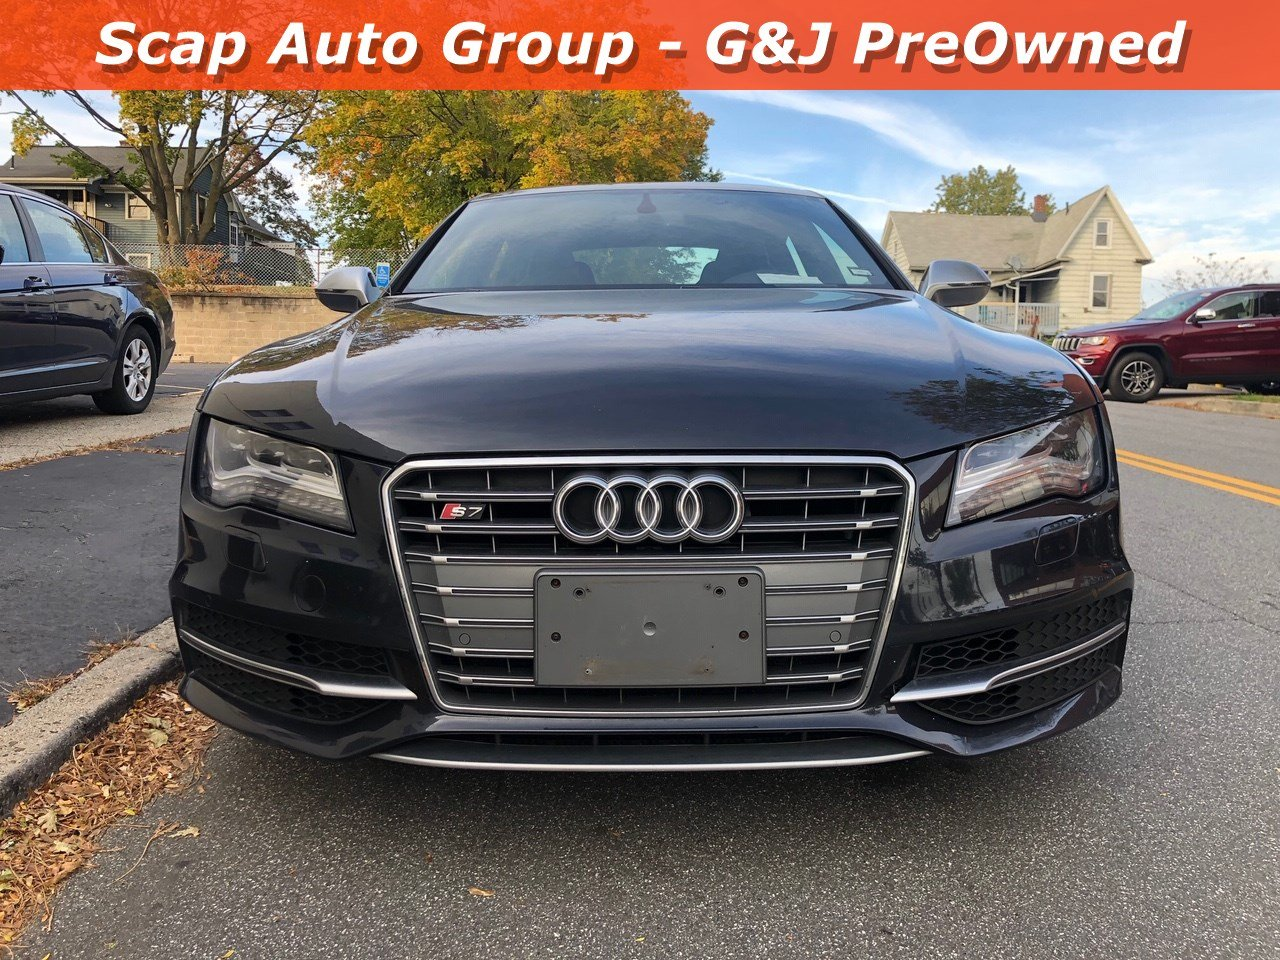 Used 2014 Audi S7 Prestige HB Prestige for sale in Fairfield CT